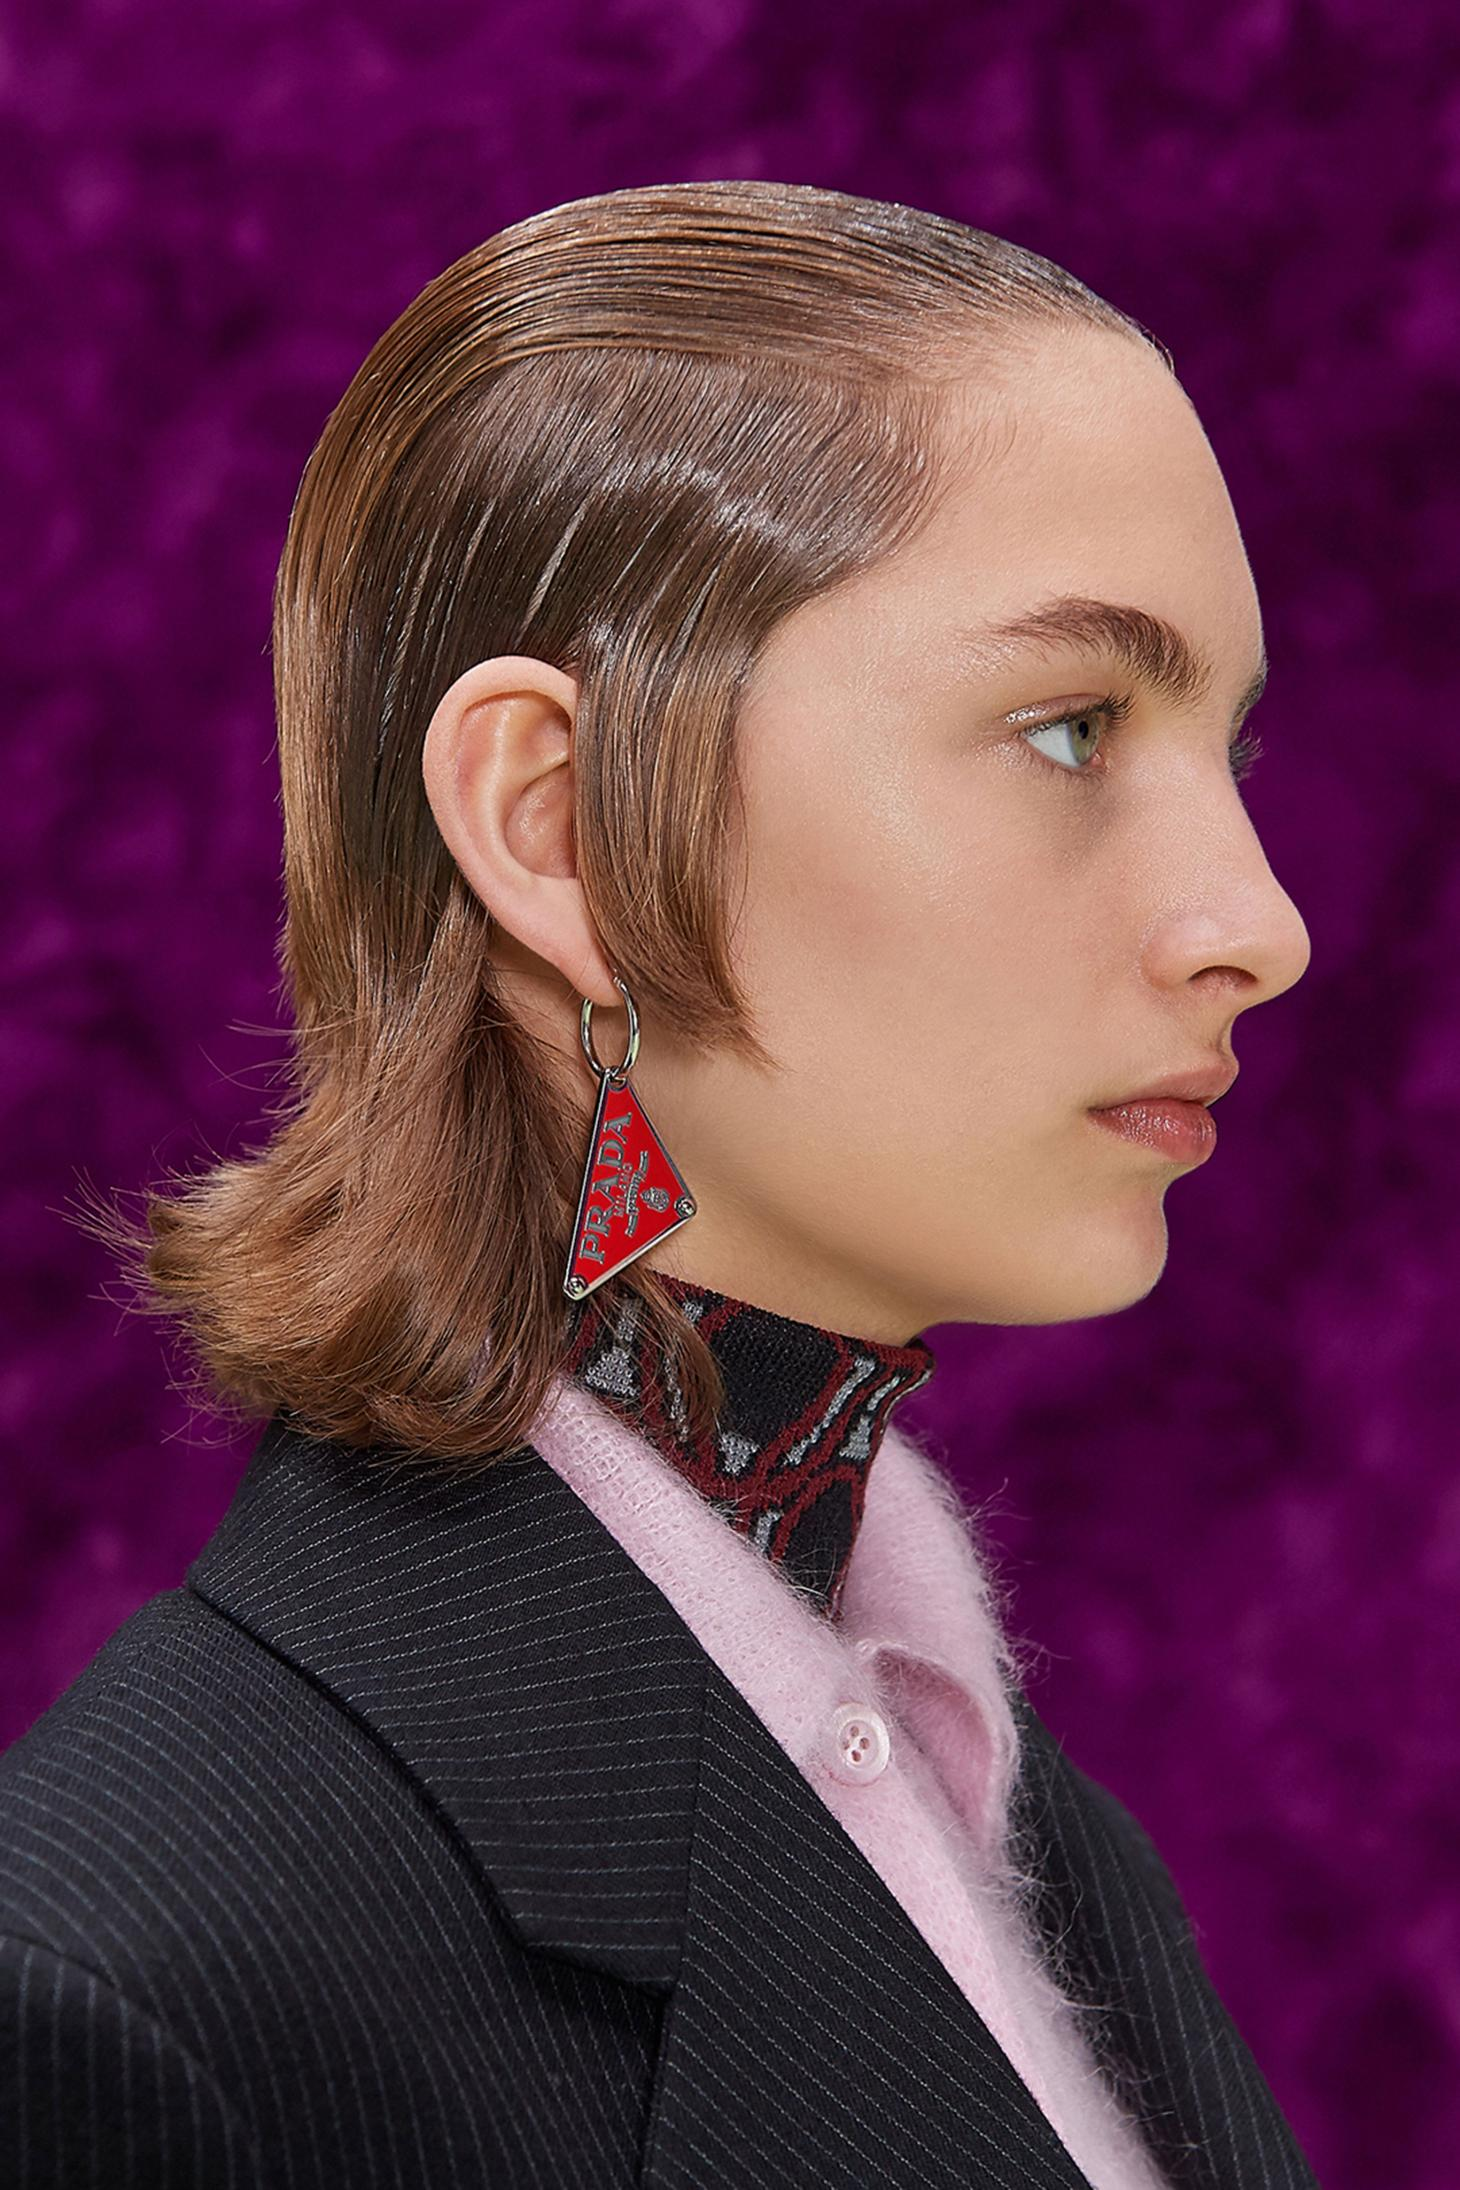 Prada A/W 2021 model wit slicked back hair by Guido Palou and Pat McGrath makeup